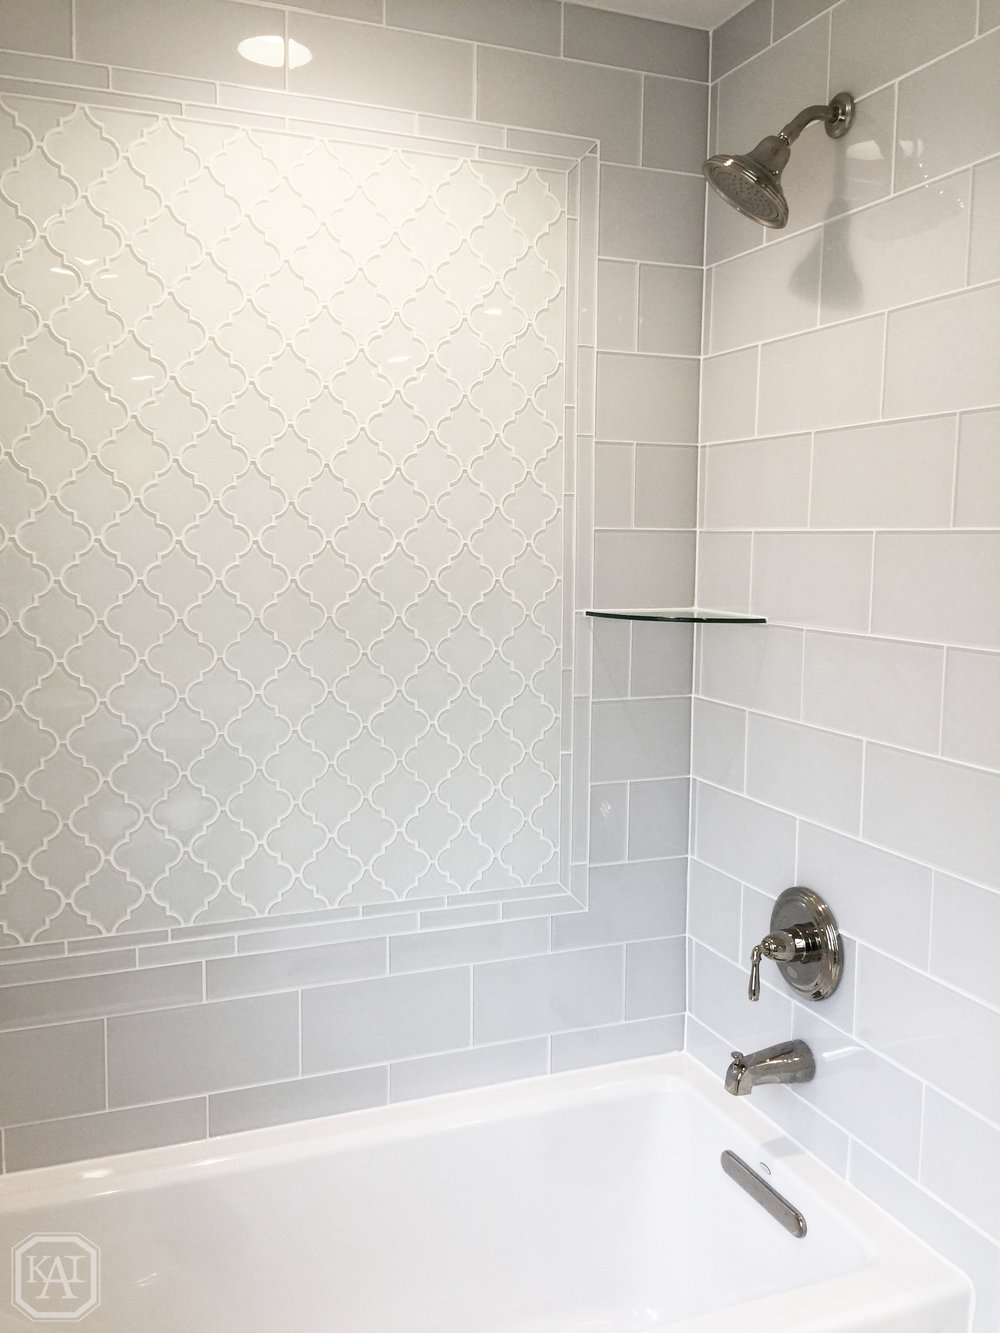 ZITELLA GIRLS SHOWER TILE_2_WITH PLUMBING FITTINGS_IN TUB AREA_FINAL.jpg